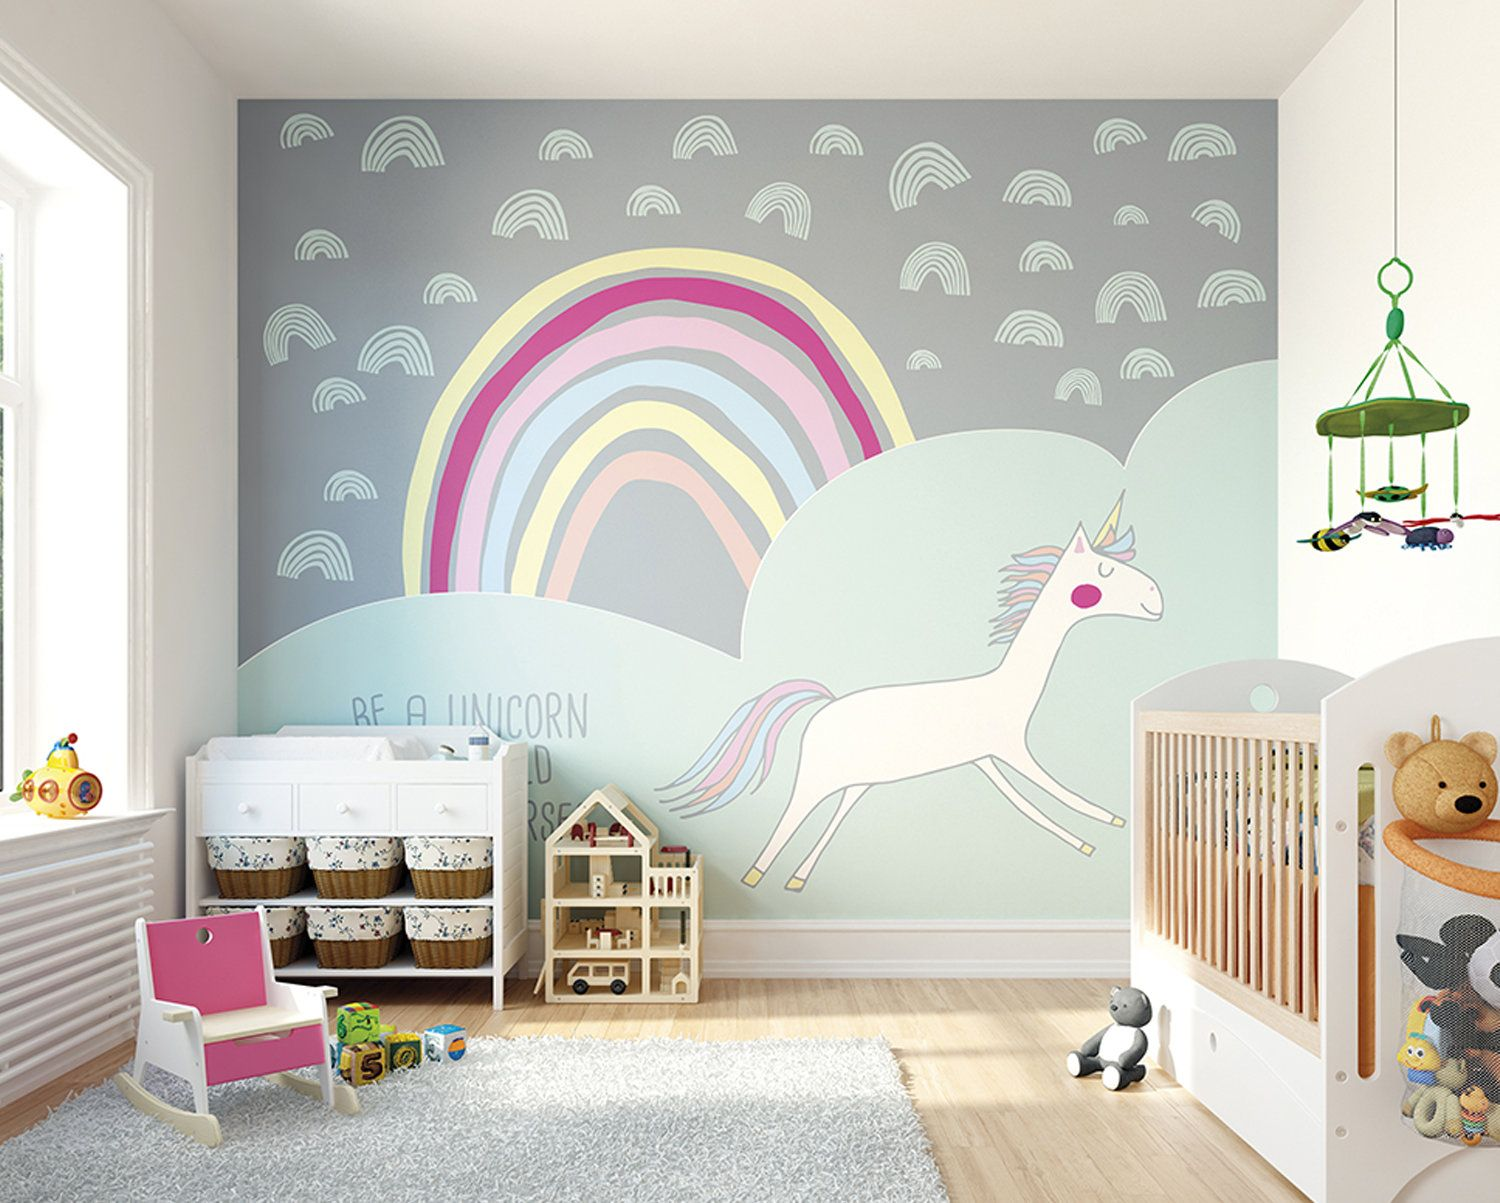 Unicorn Rainbow Wallpaper Mural I Believe In Unicorns Girls